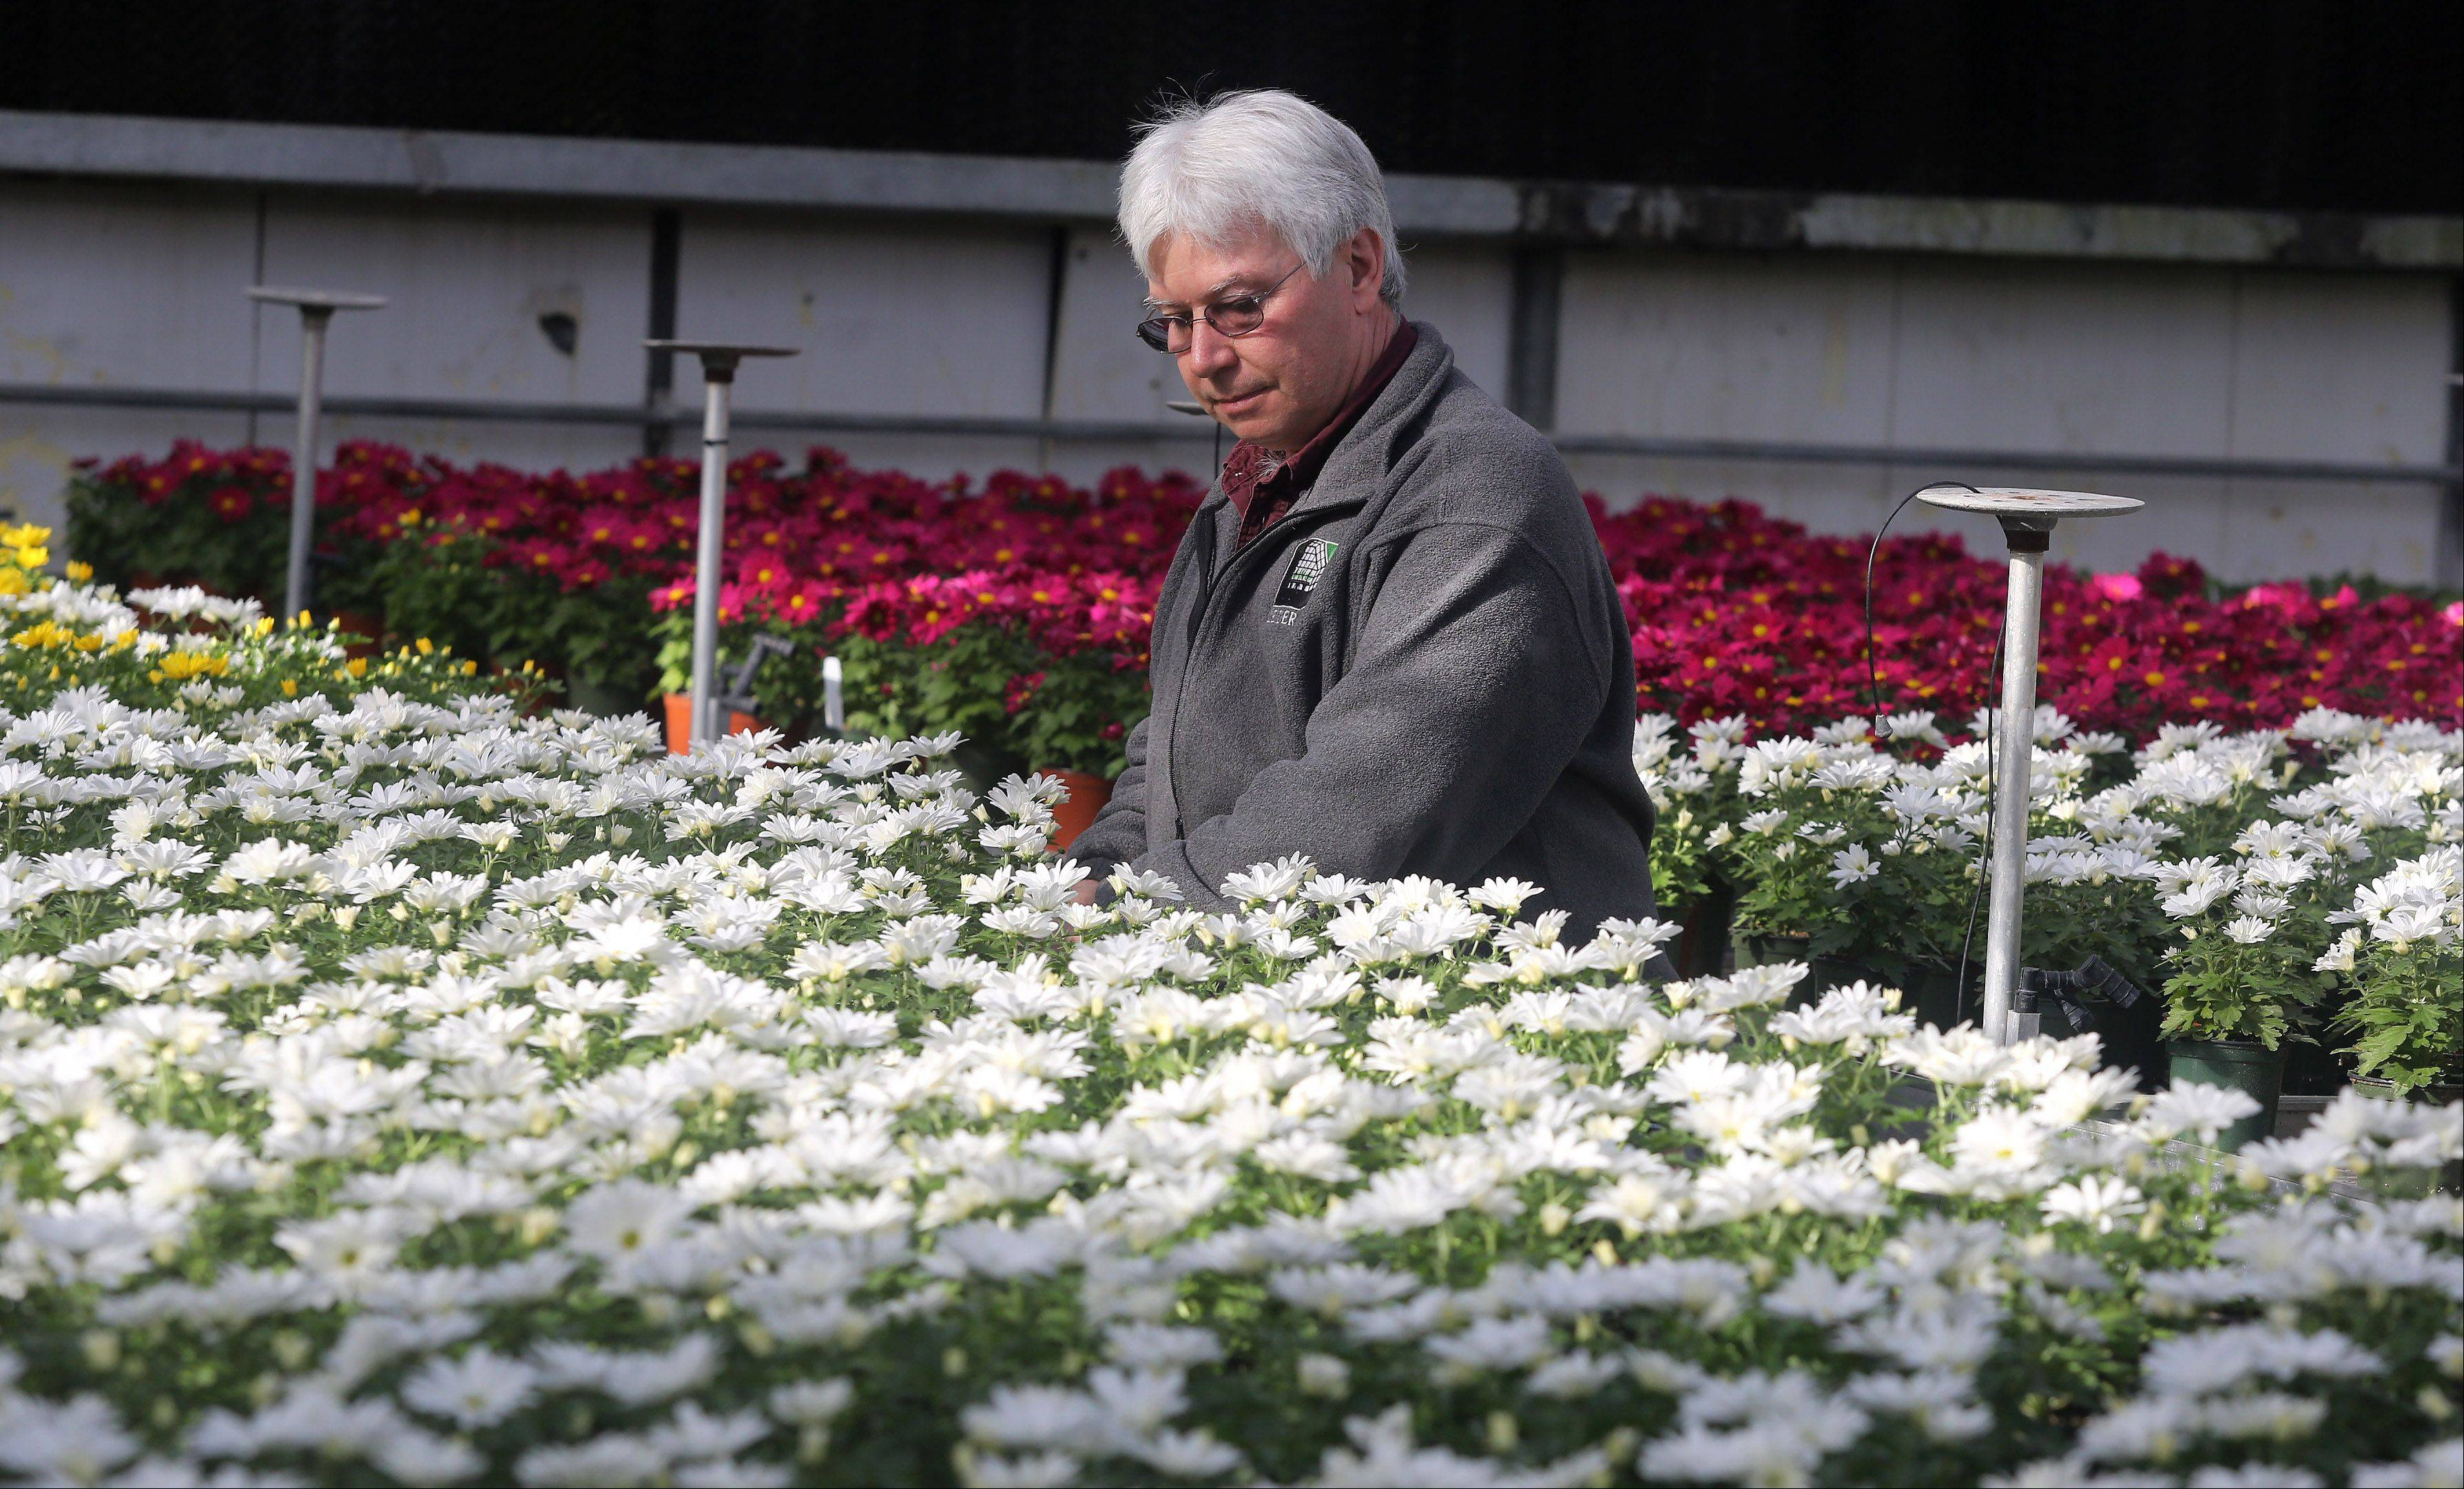 Operations manager Jim Jaeger checks on mums Tuesday at Leider Greenhouse and Garden Center in Buffalo Grove.